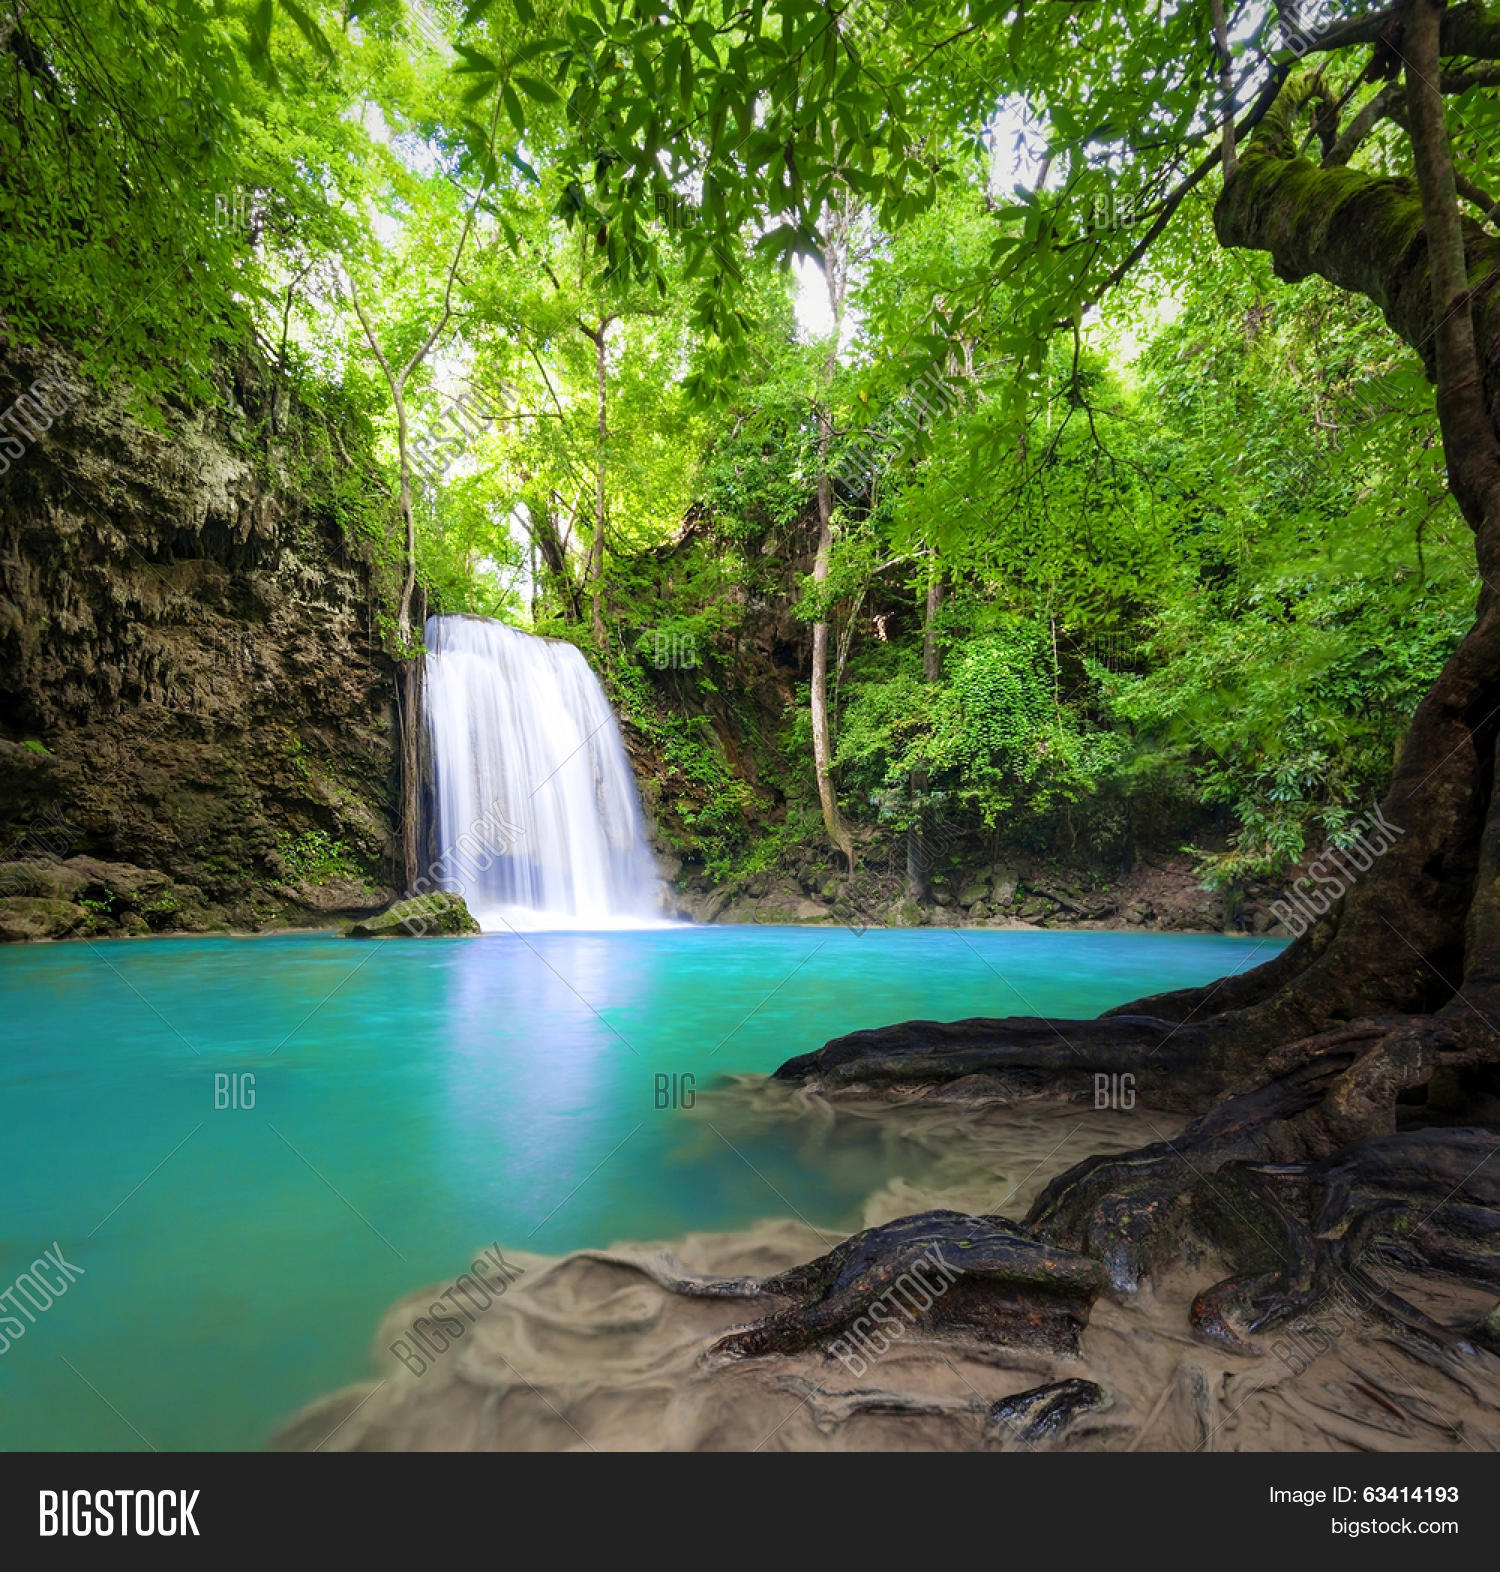 Waterfall Landscape Background Image Photo Bigstock